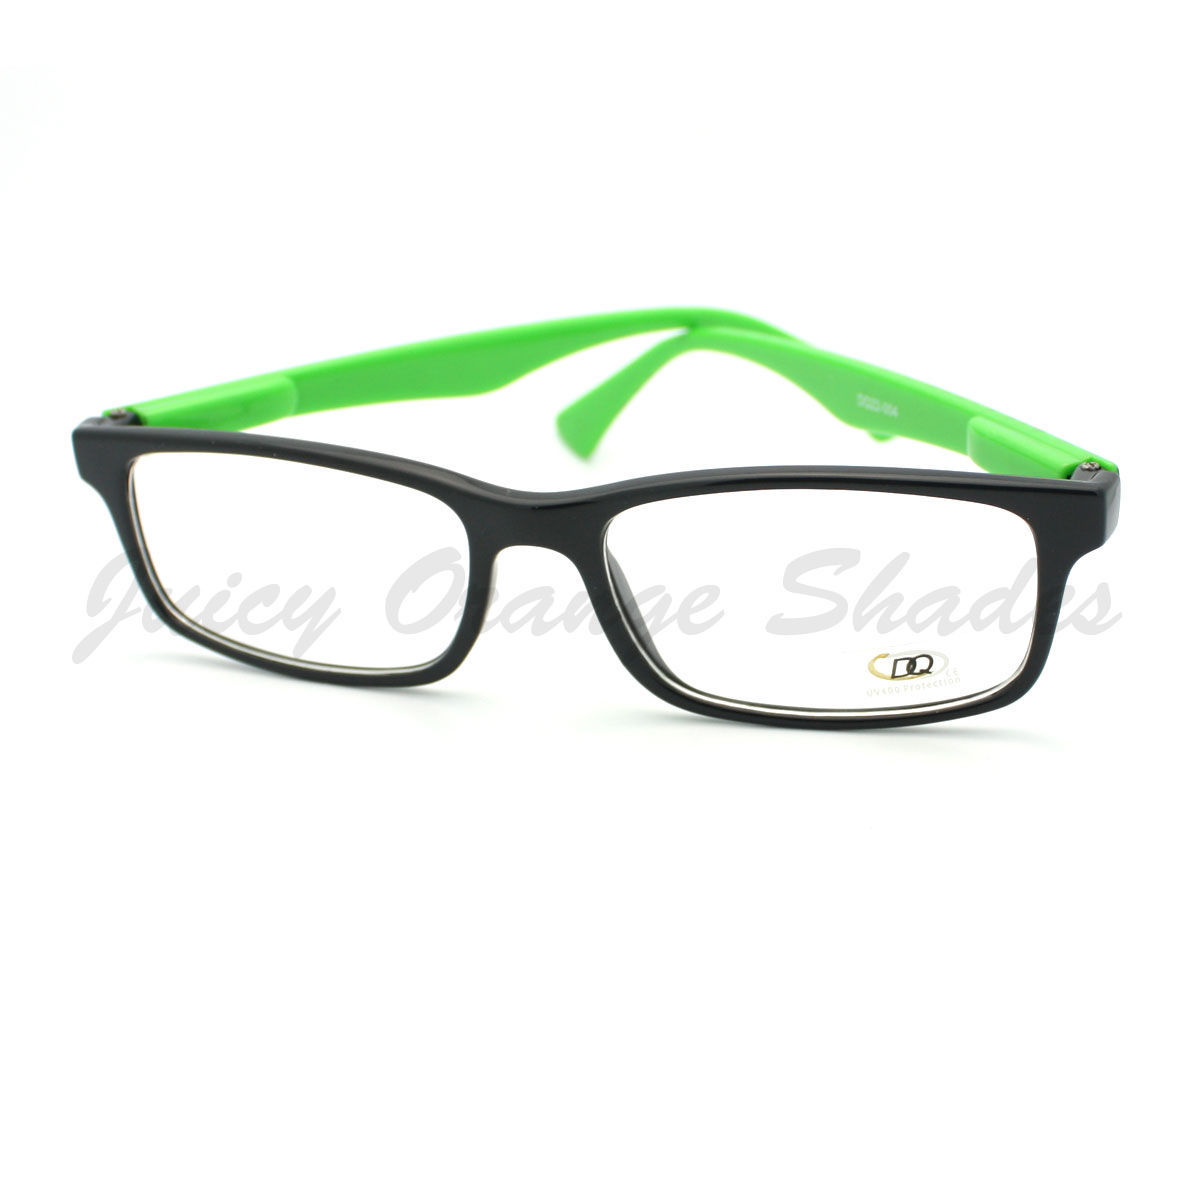 Clear Lens Eyeglasses Thin Rectangular Black Frame Color Zebra Print